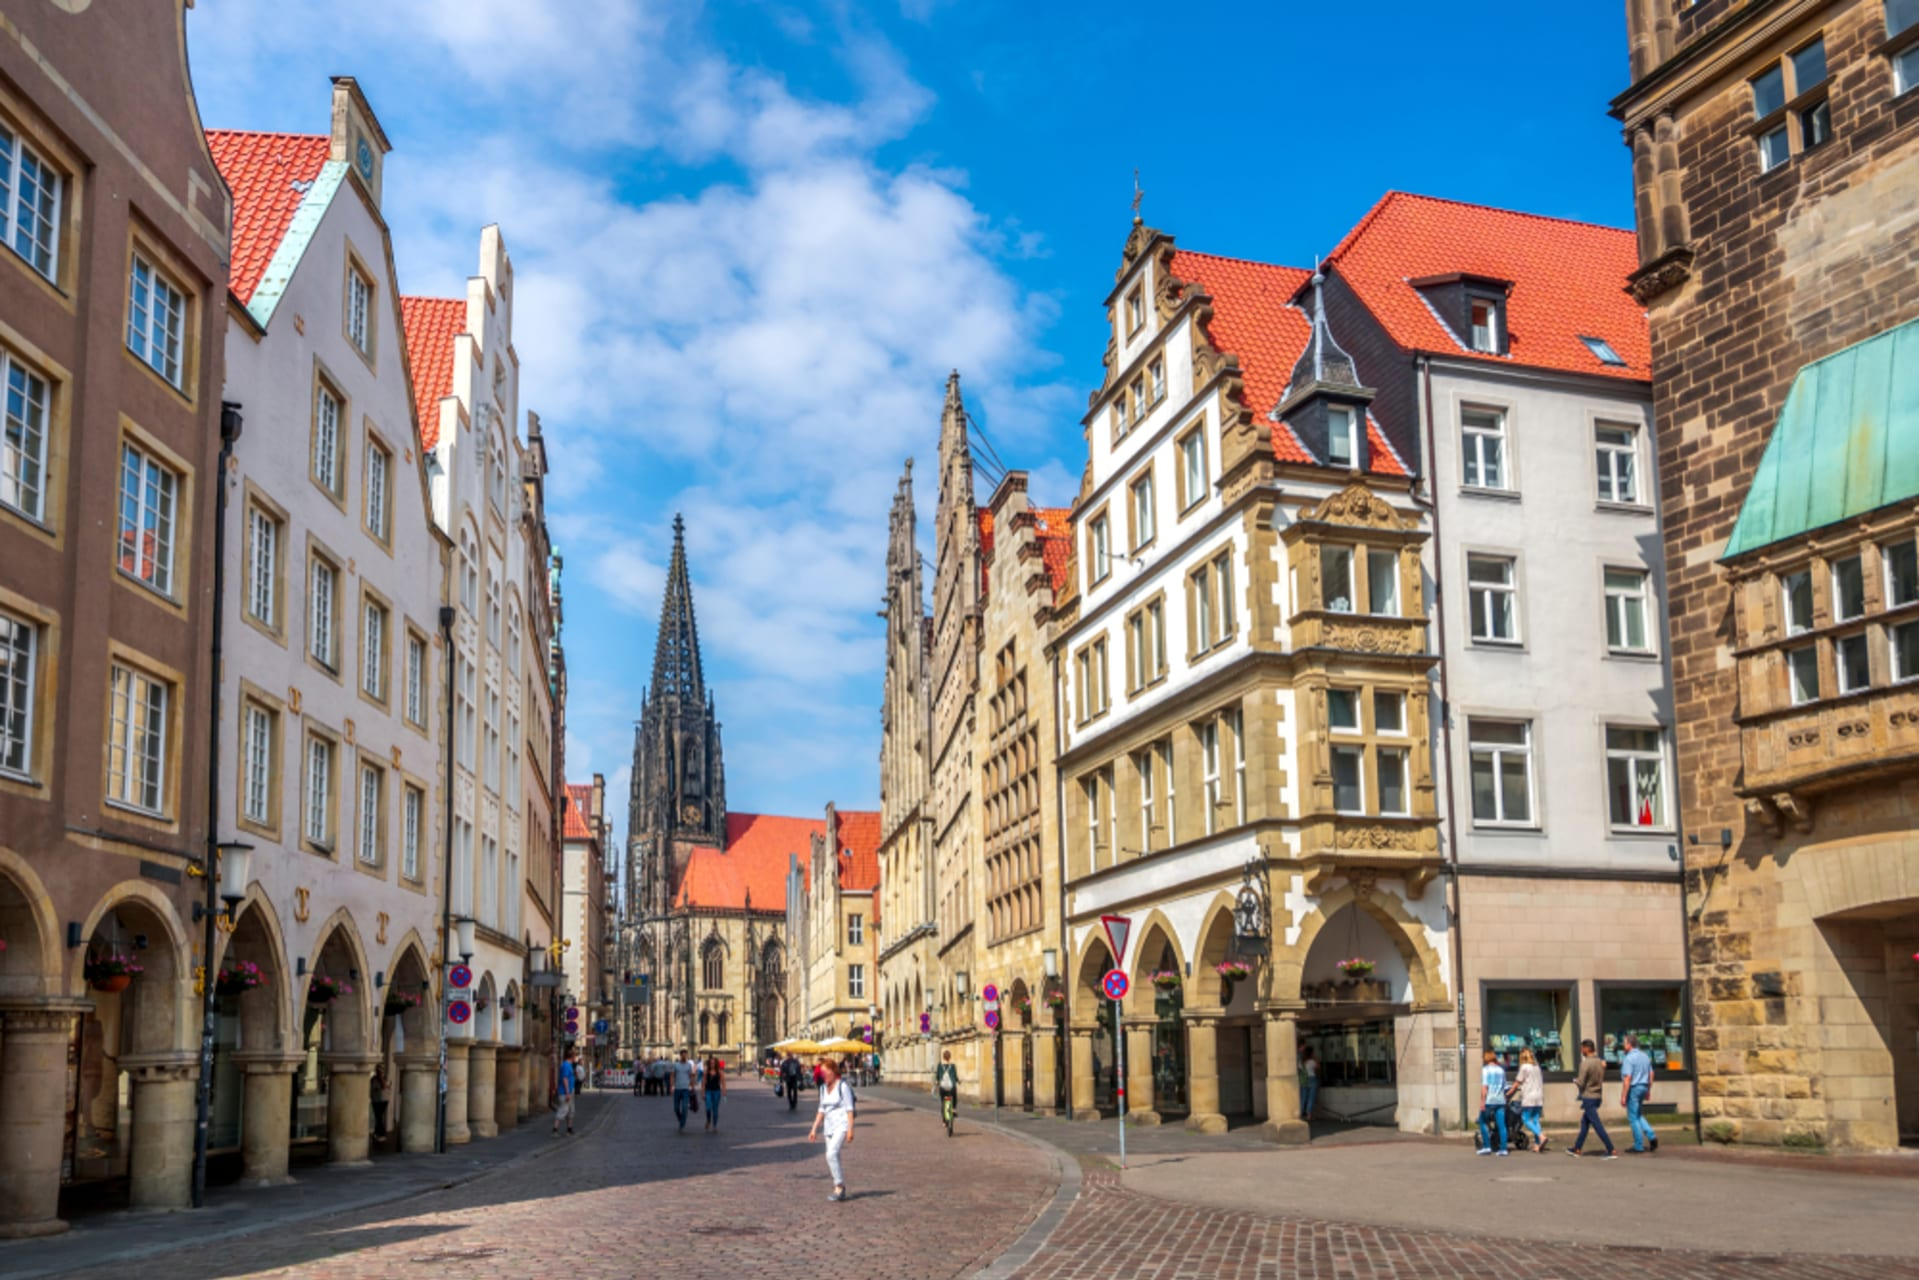 Munster - Munster: Walking and Photography Tour.